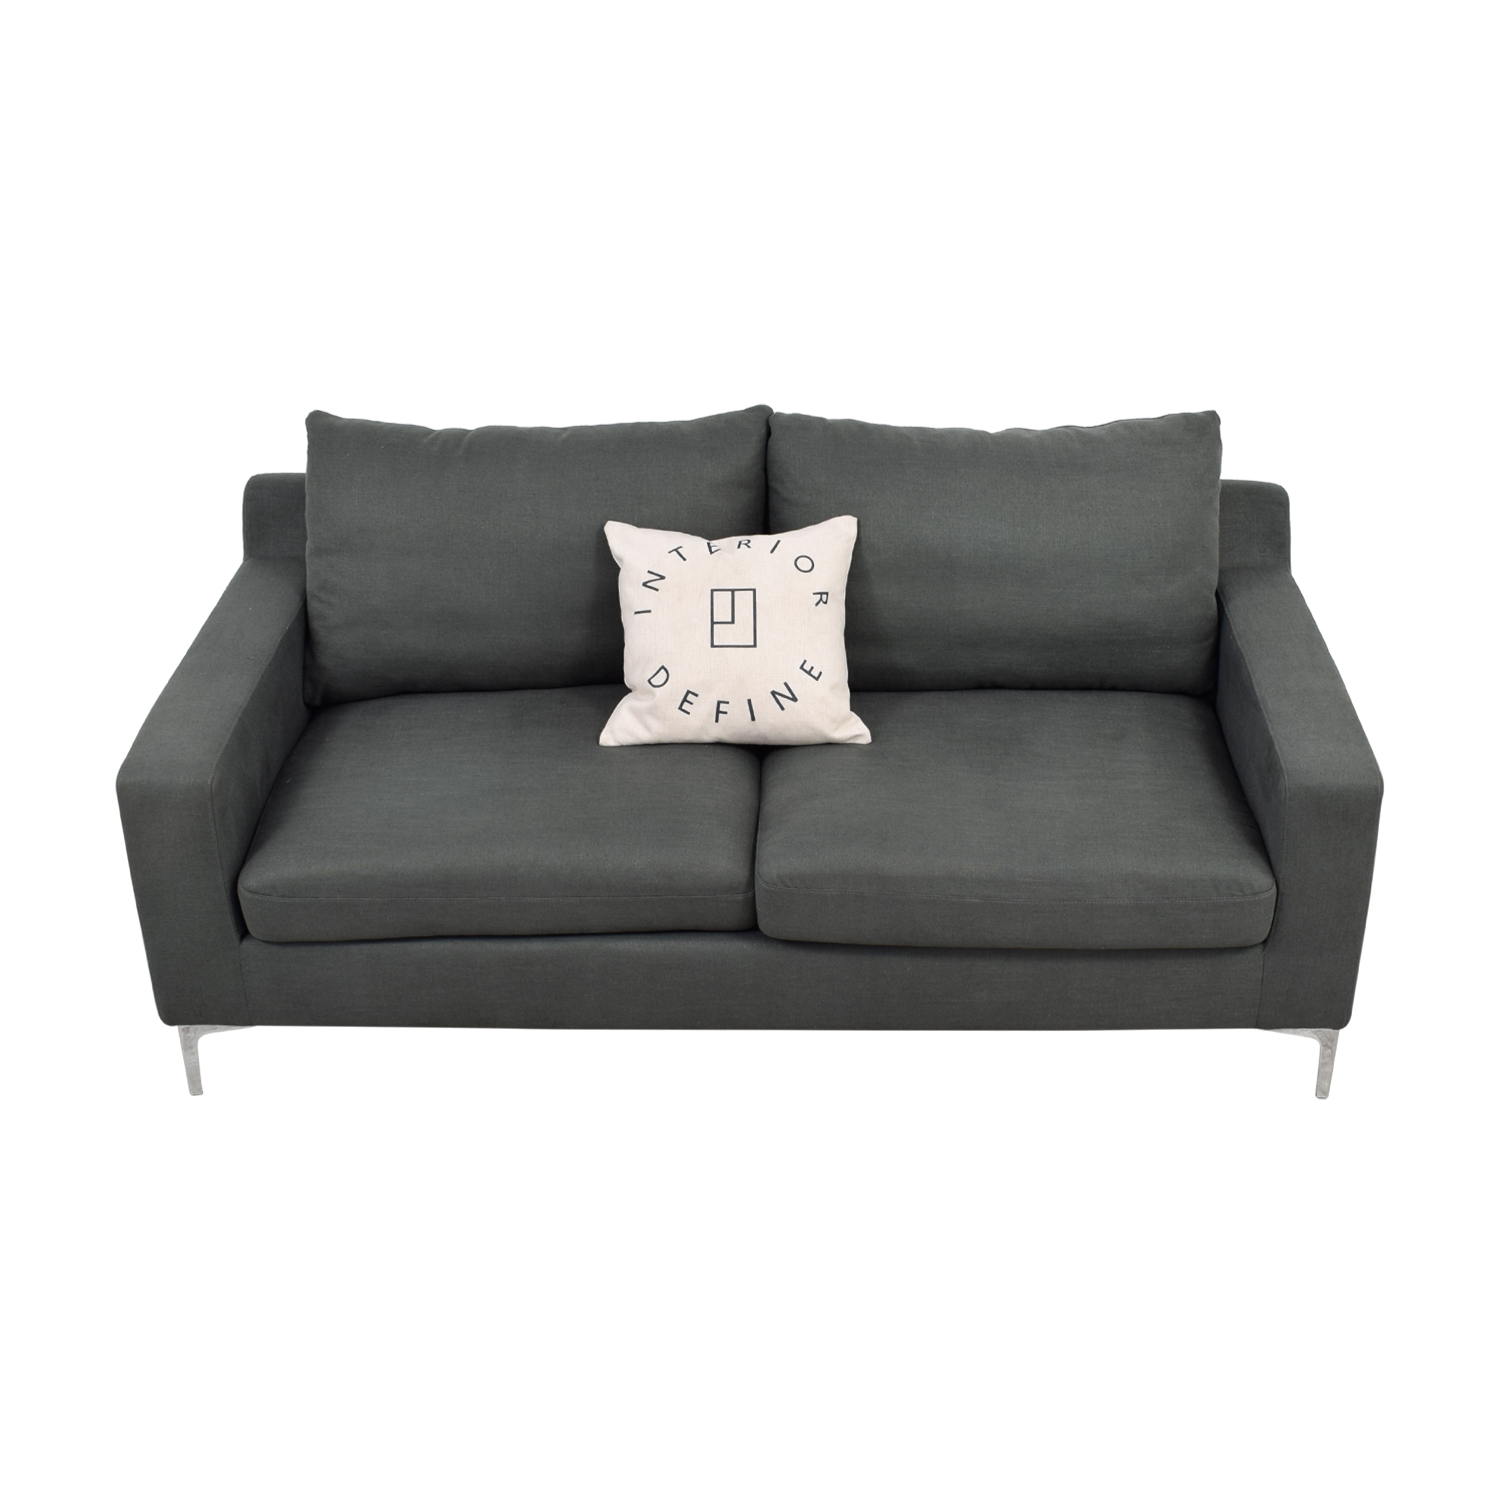 Gray Two Cushion Sofa with Pillow sale